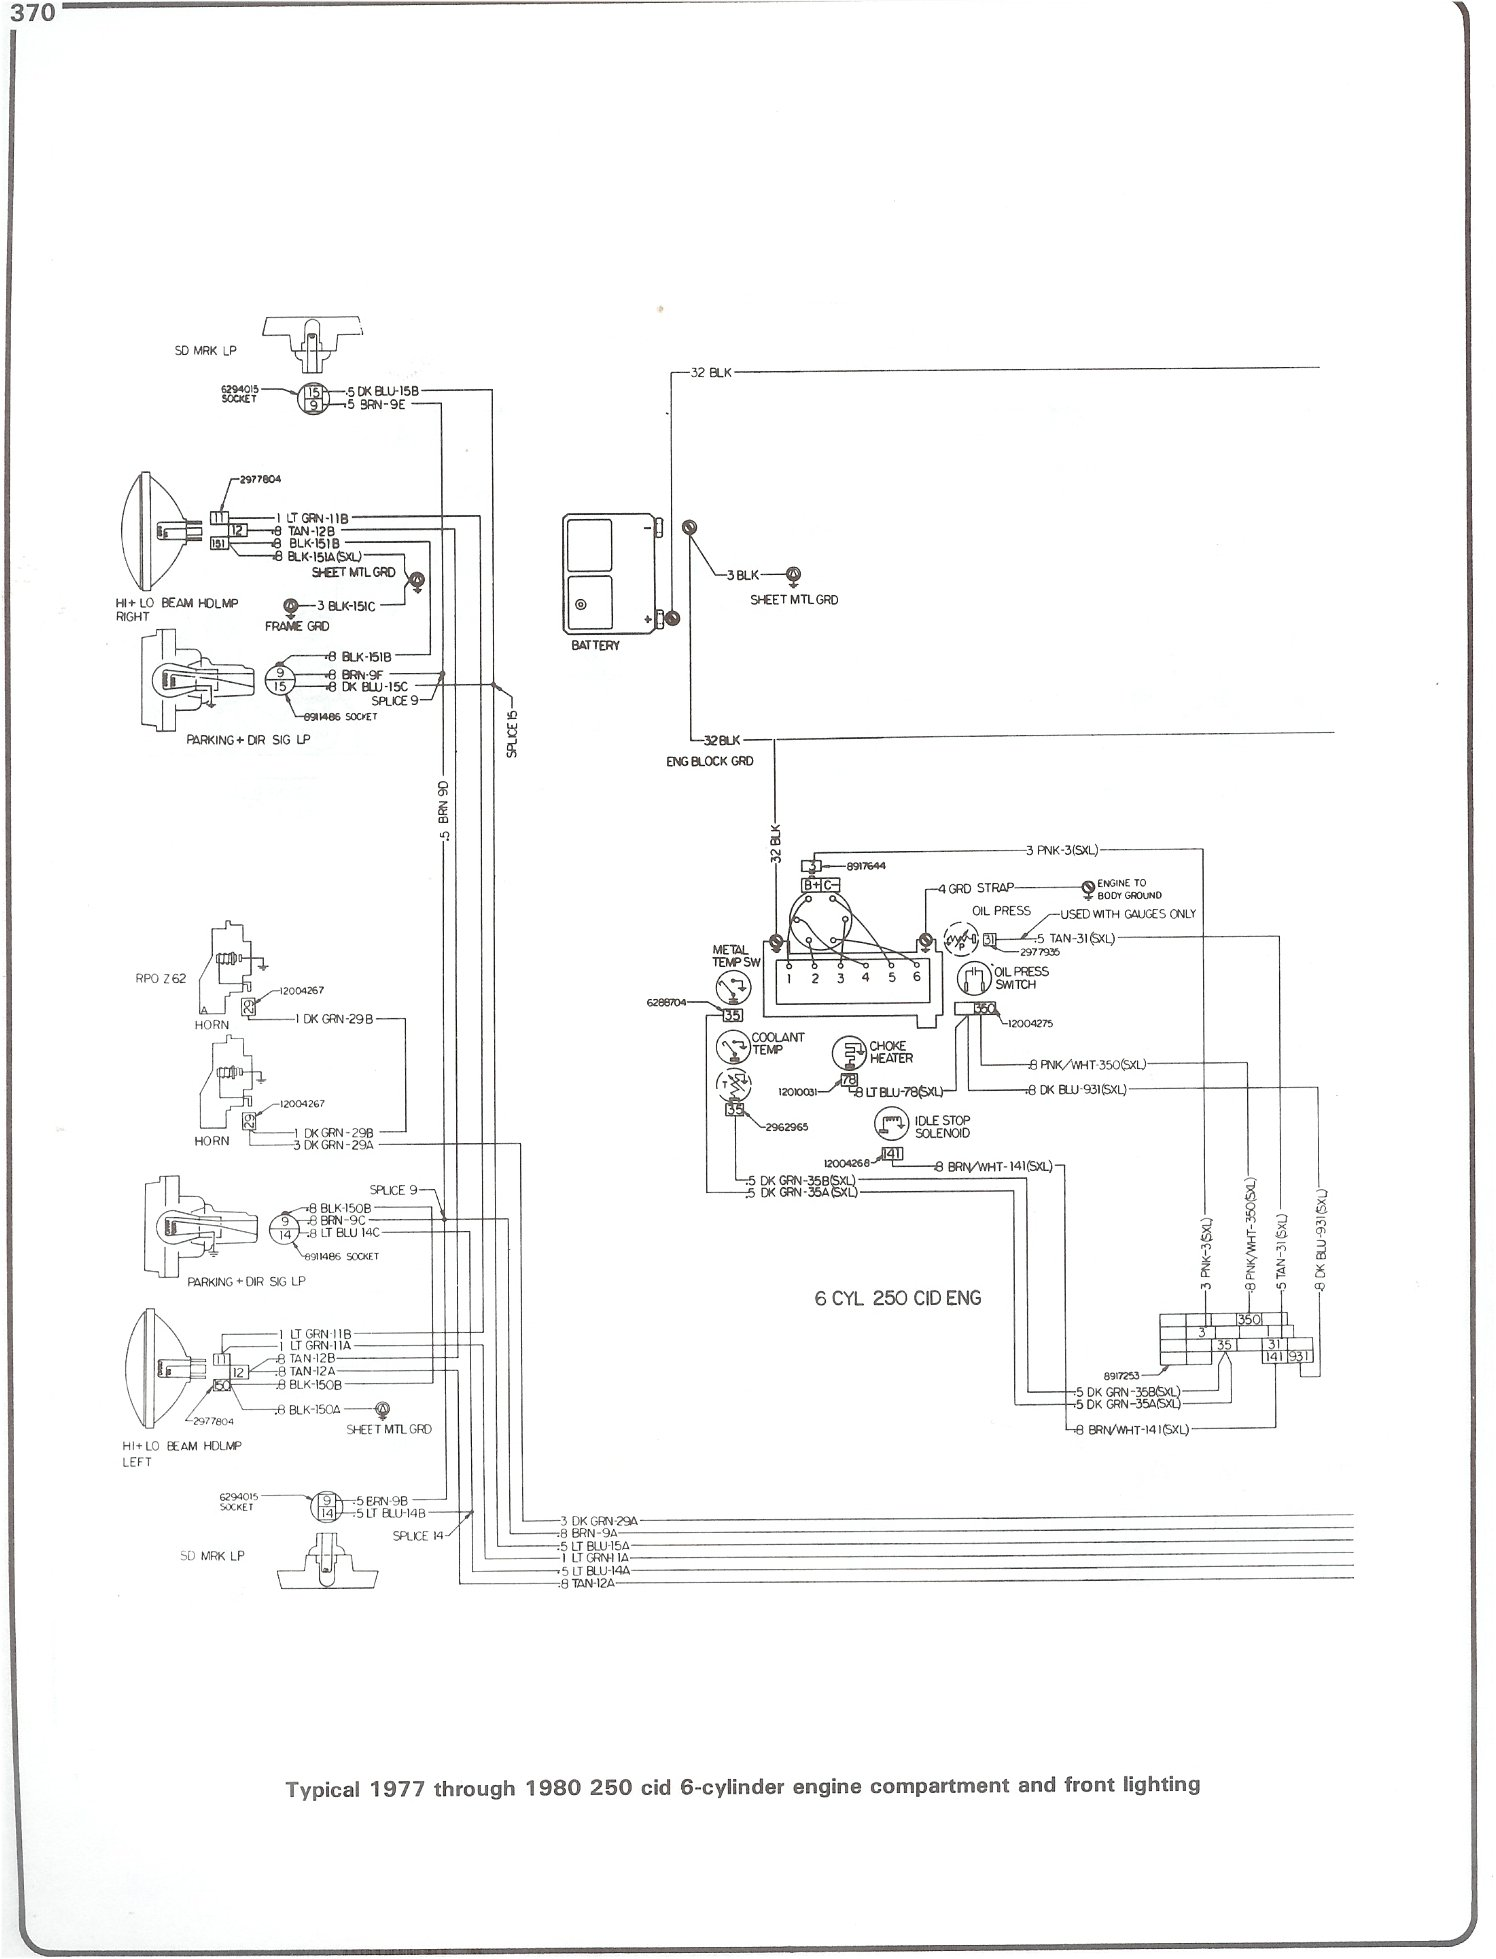 Instrument Wiring Diagram For 1992 Chevy Blazer - Explore Schematic ...